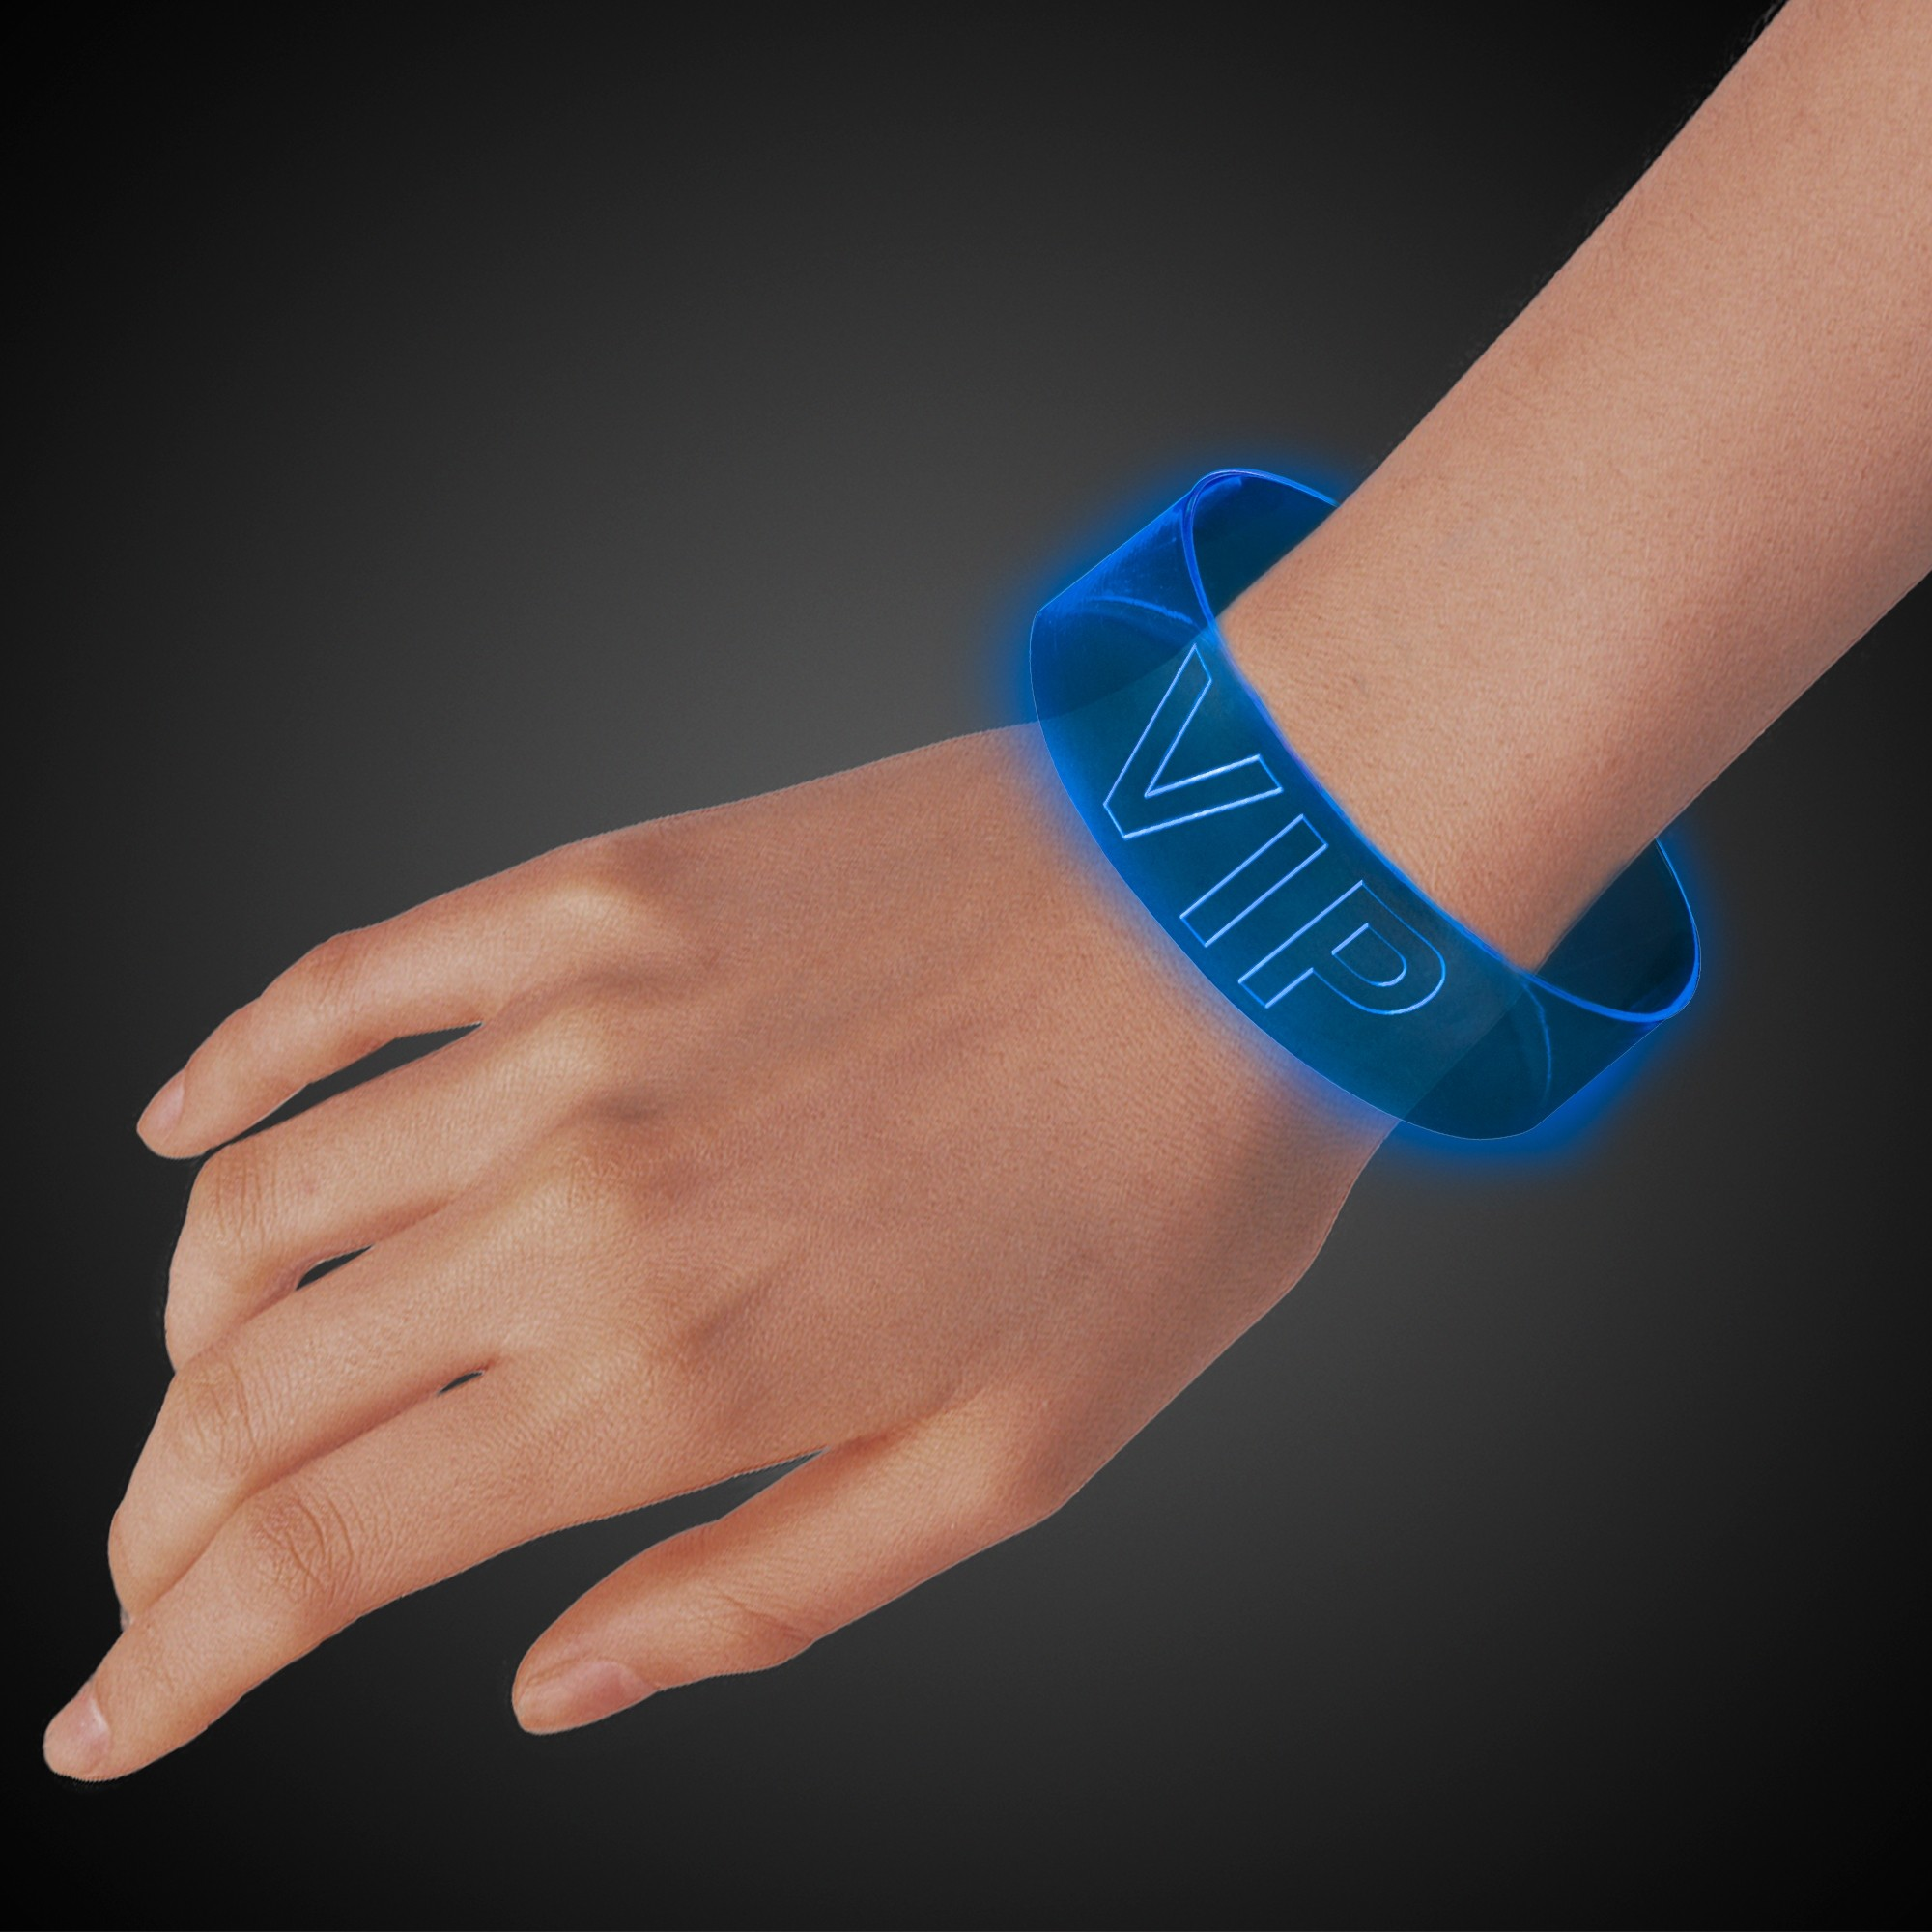 BLUE LED MAGNETIC BRACELET